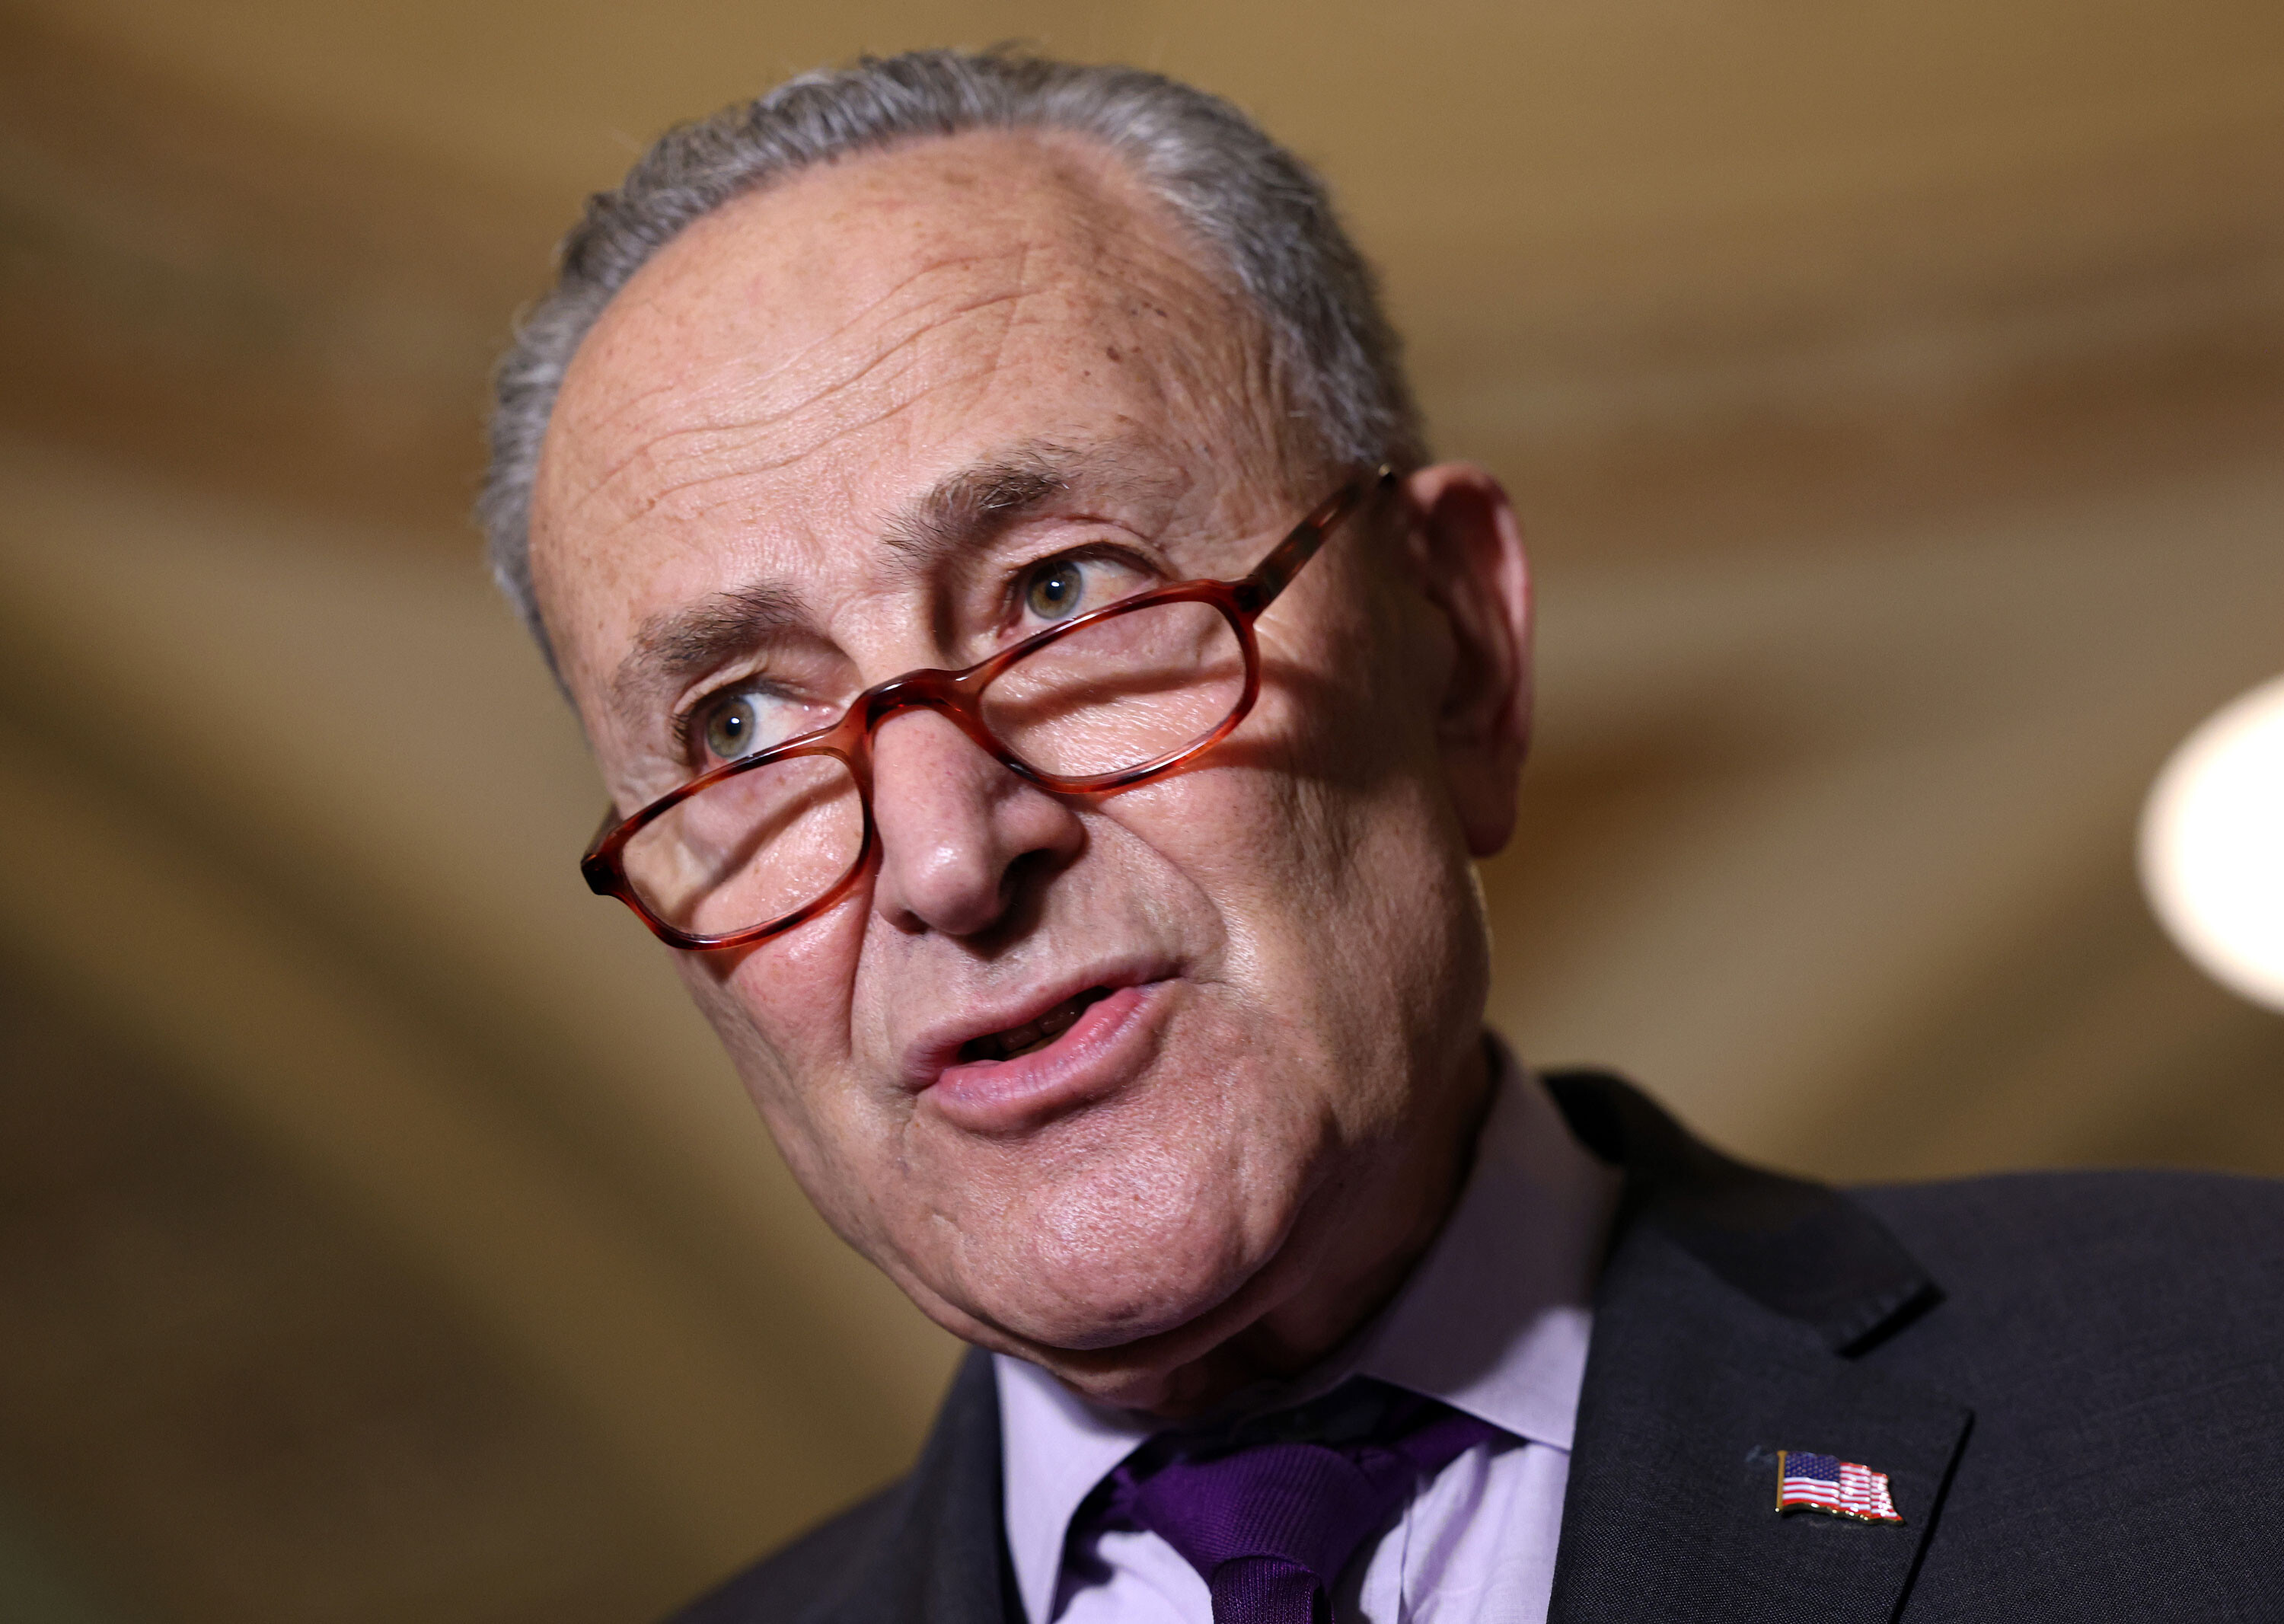 Senate Democrats approve $3.5 trillion budget resolution in key step toward passing major economic package without GOP votes